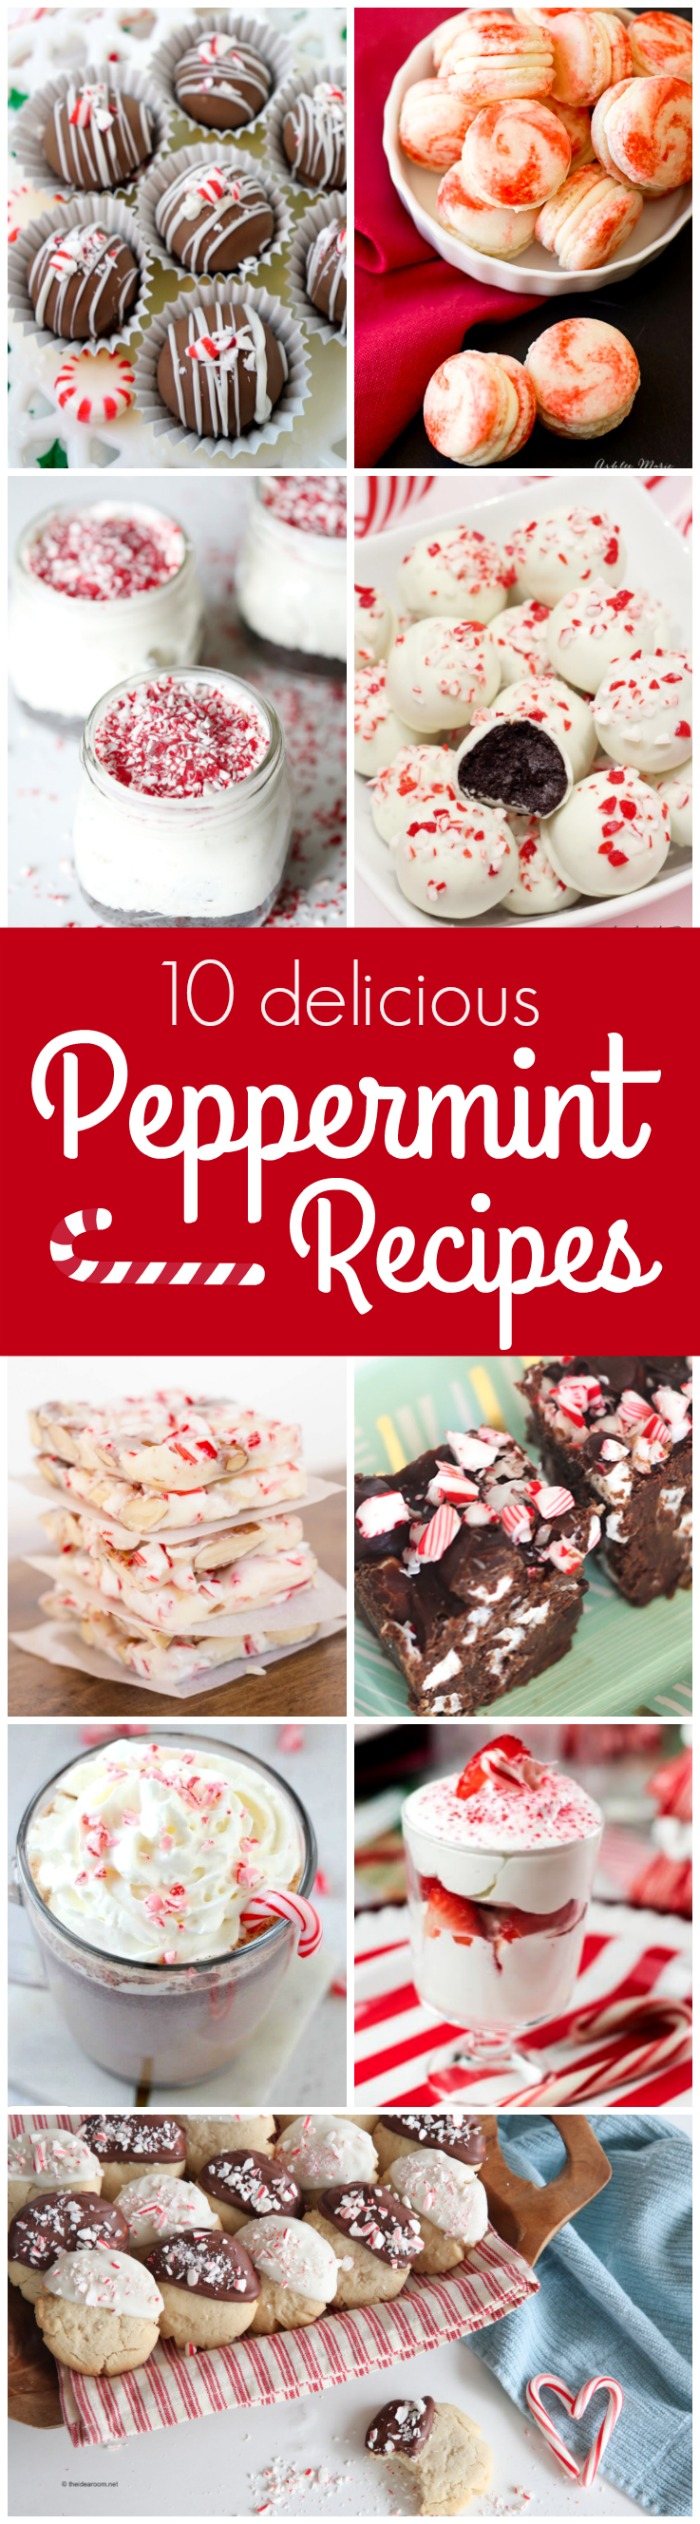 10 Peppermint Recipe perfect for the holidays!